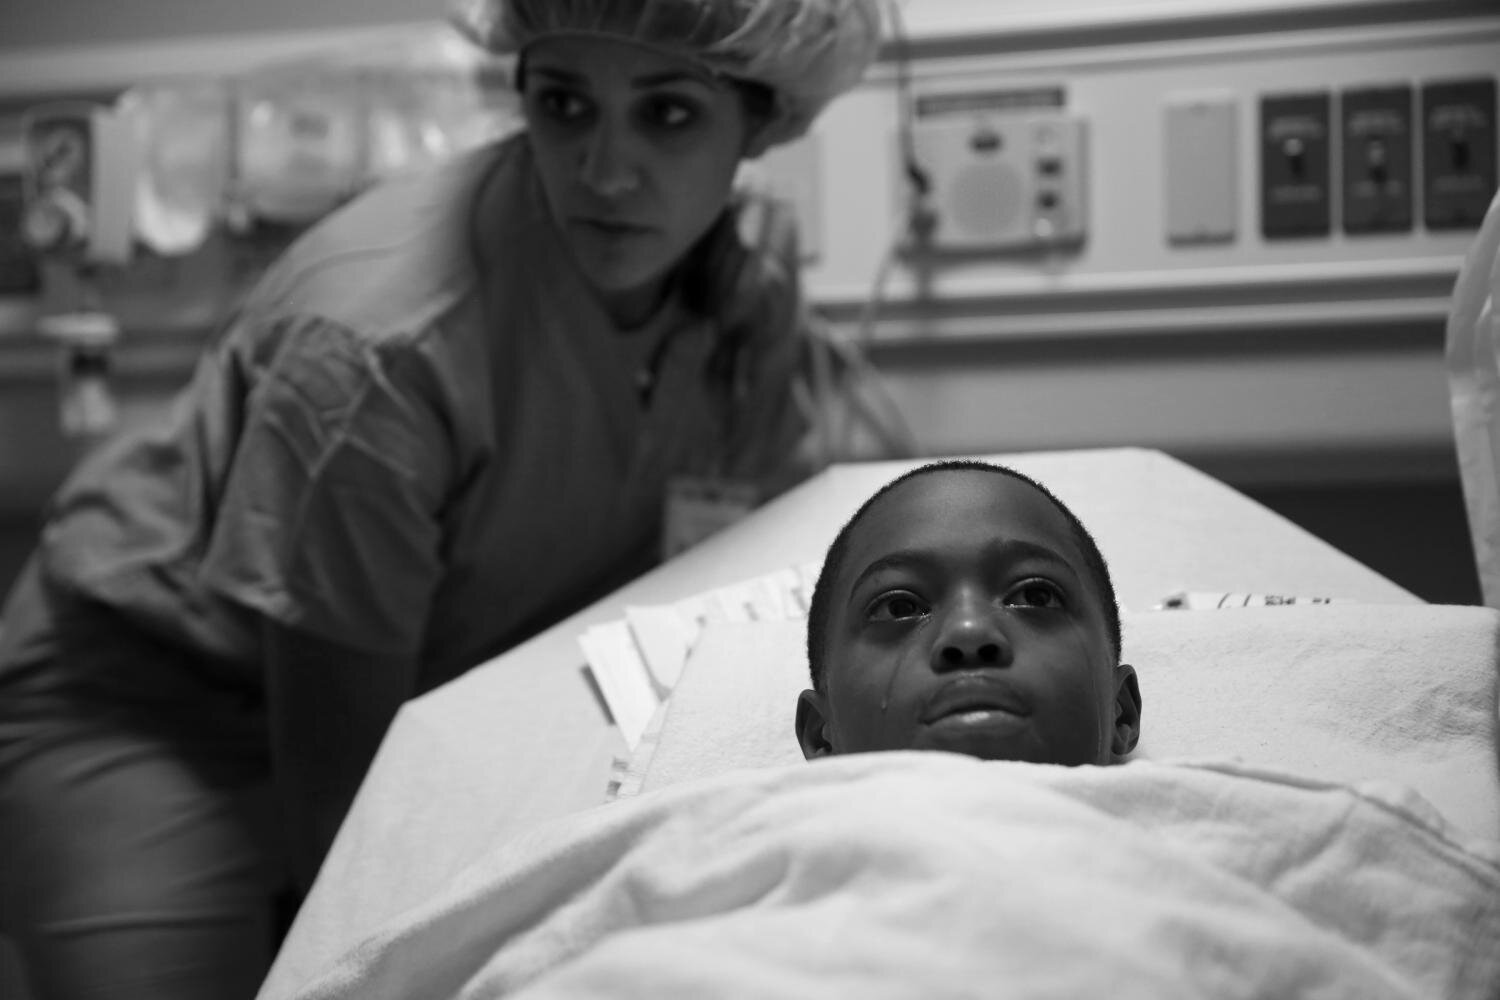 Tavon Tanner tears up before surgery at Lurie Children's Hospital on Oct. 17 to remove the bullet that ripped through his pancreas, stomach, spleen, a kidney and his left lung before becoming lodged just below his shoulder. (E. Jason Wambsgans/Chicago Tribune/Courtesy of Columbia University)